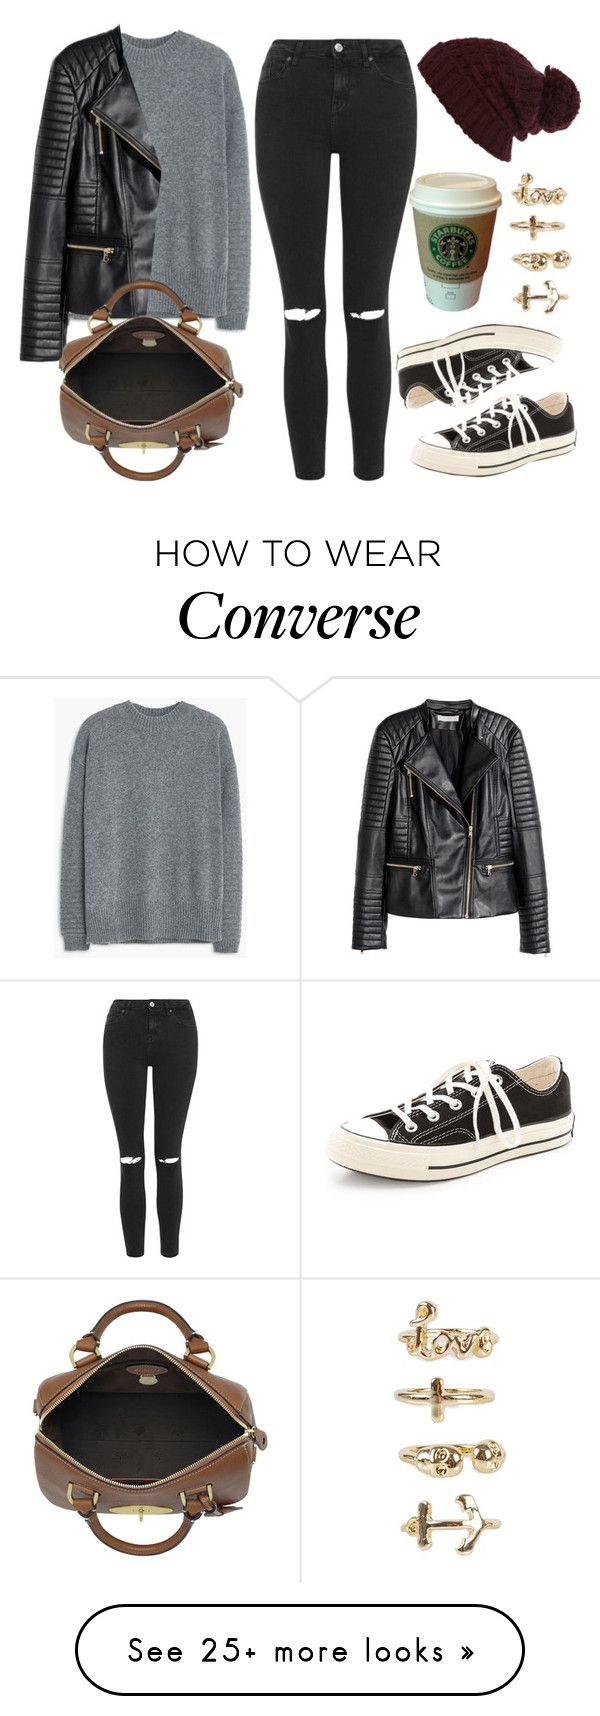 Style #9736 by vany-alvarado on Polyvore featuring Topshop, MANGO, H&M, Mulberry, River Island, NLY Trend, Converse, women's clothing, women's fashion and women